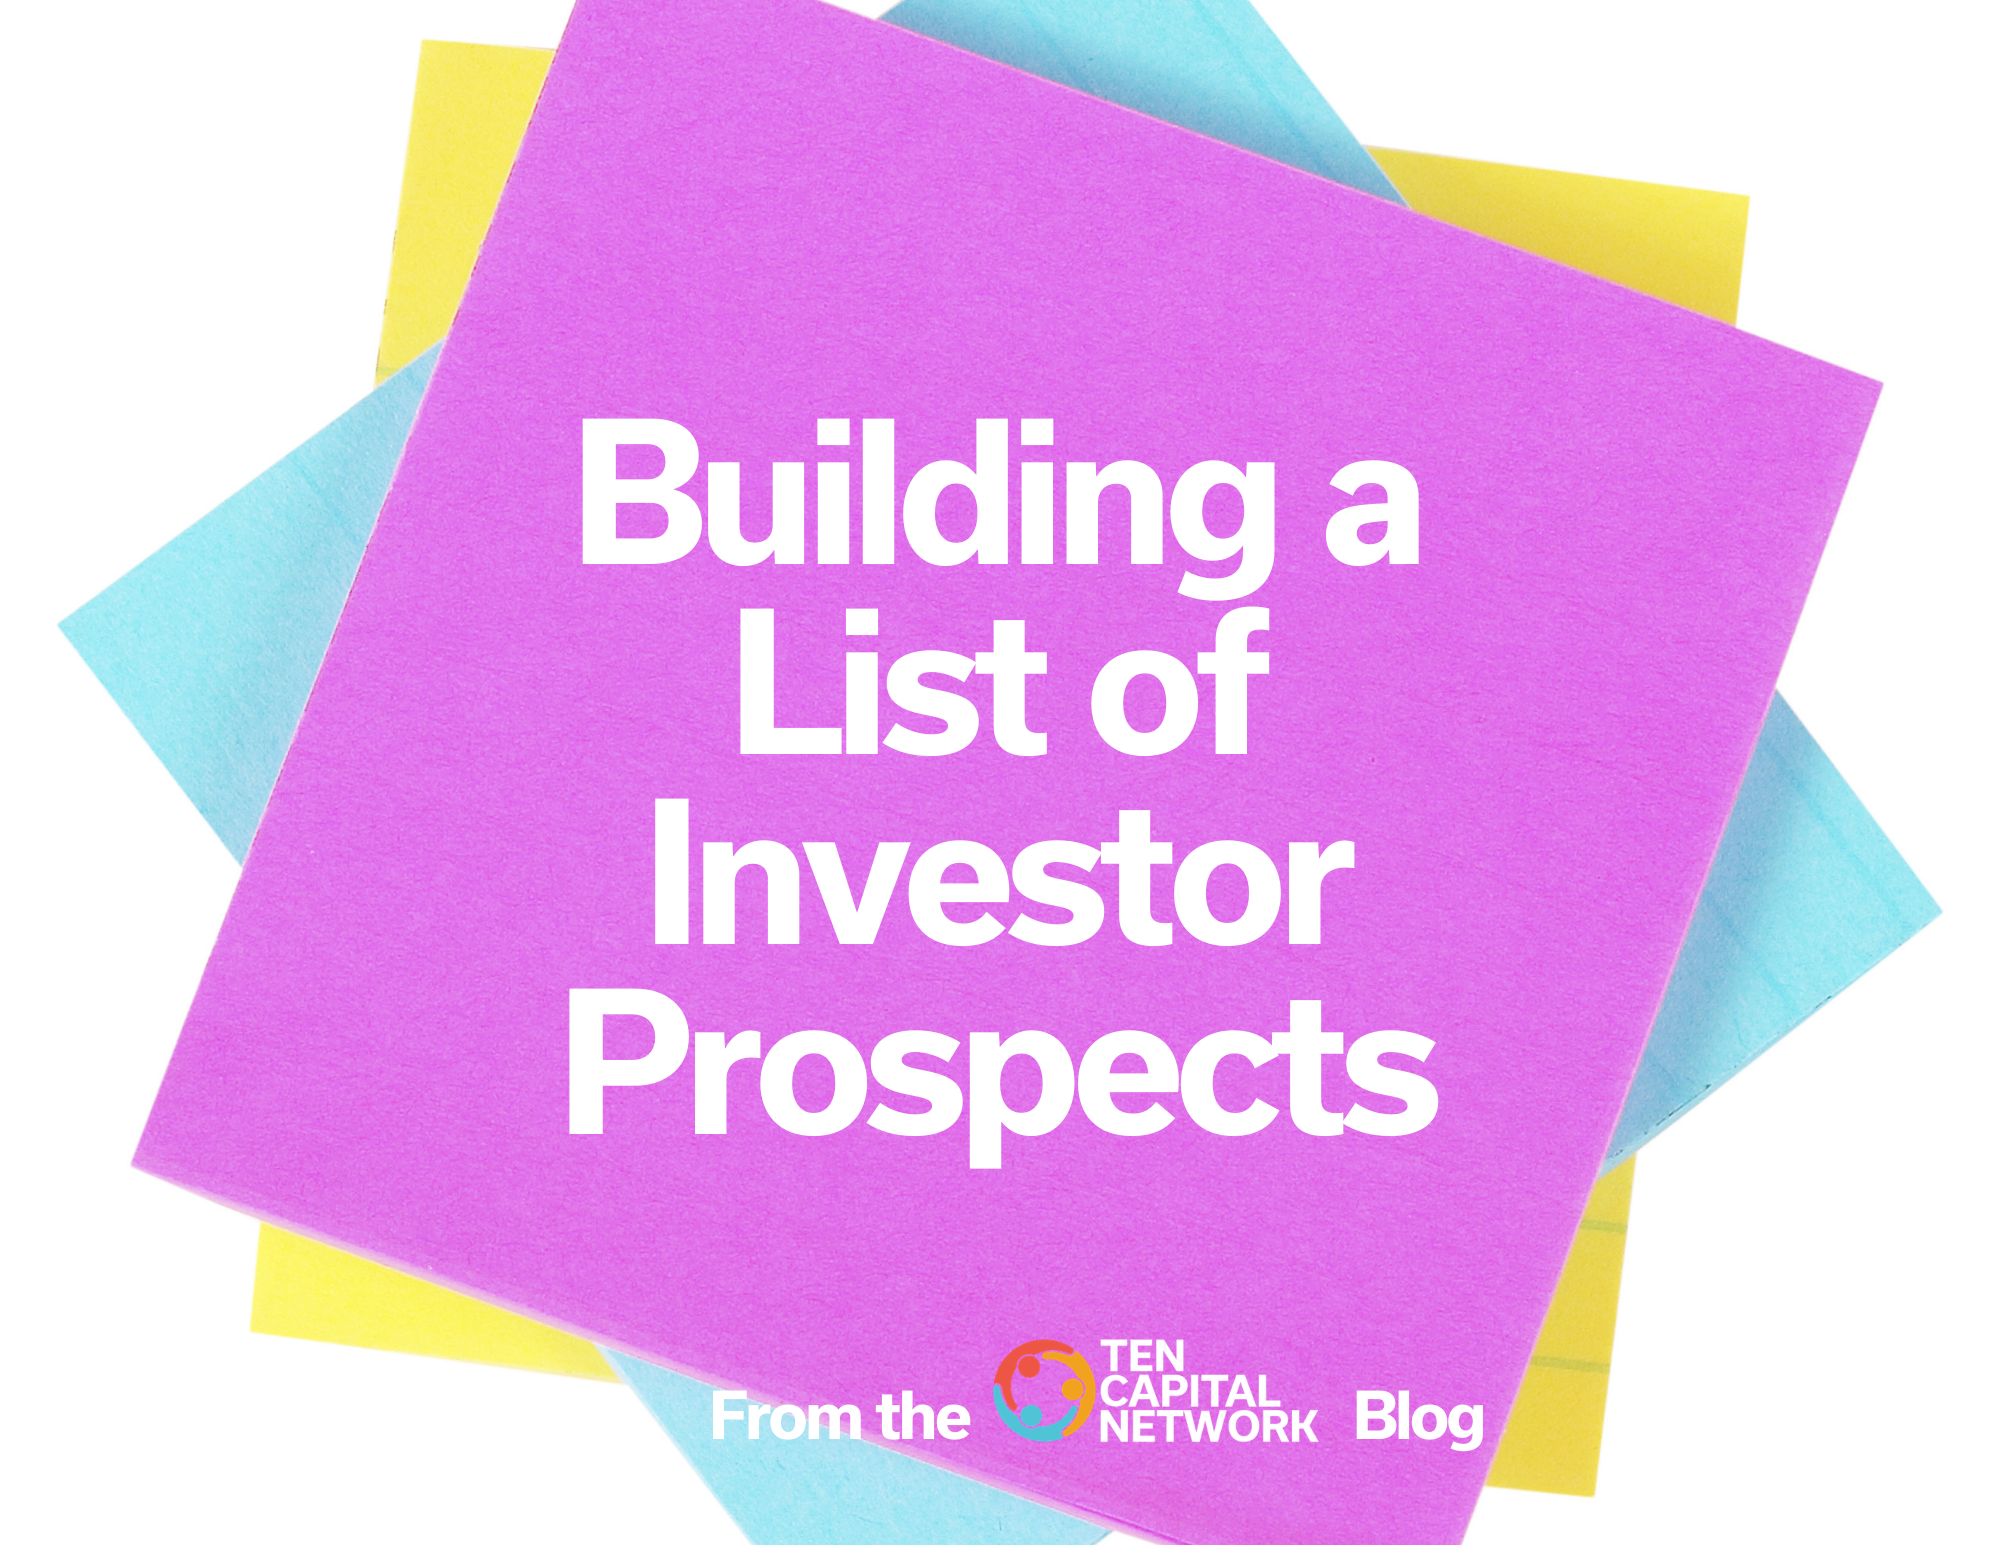 Building a List of Investor Prospects